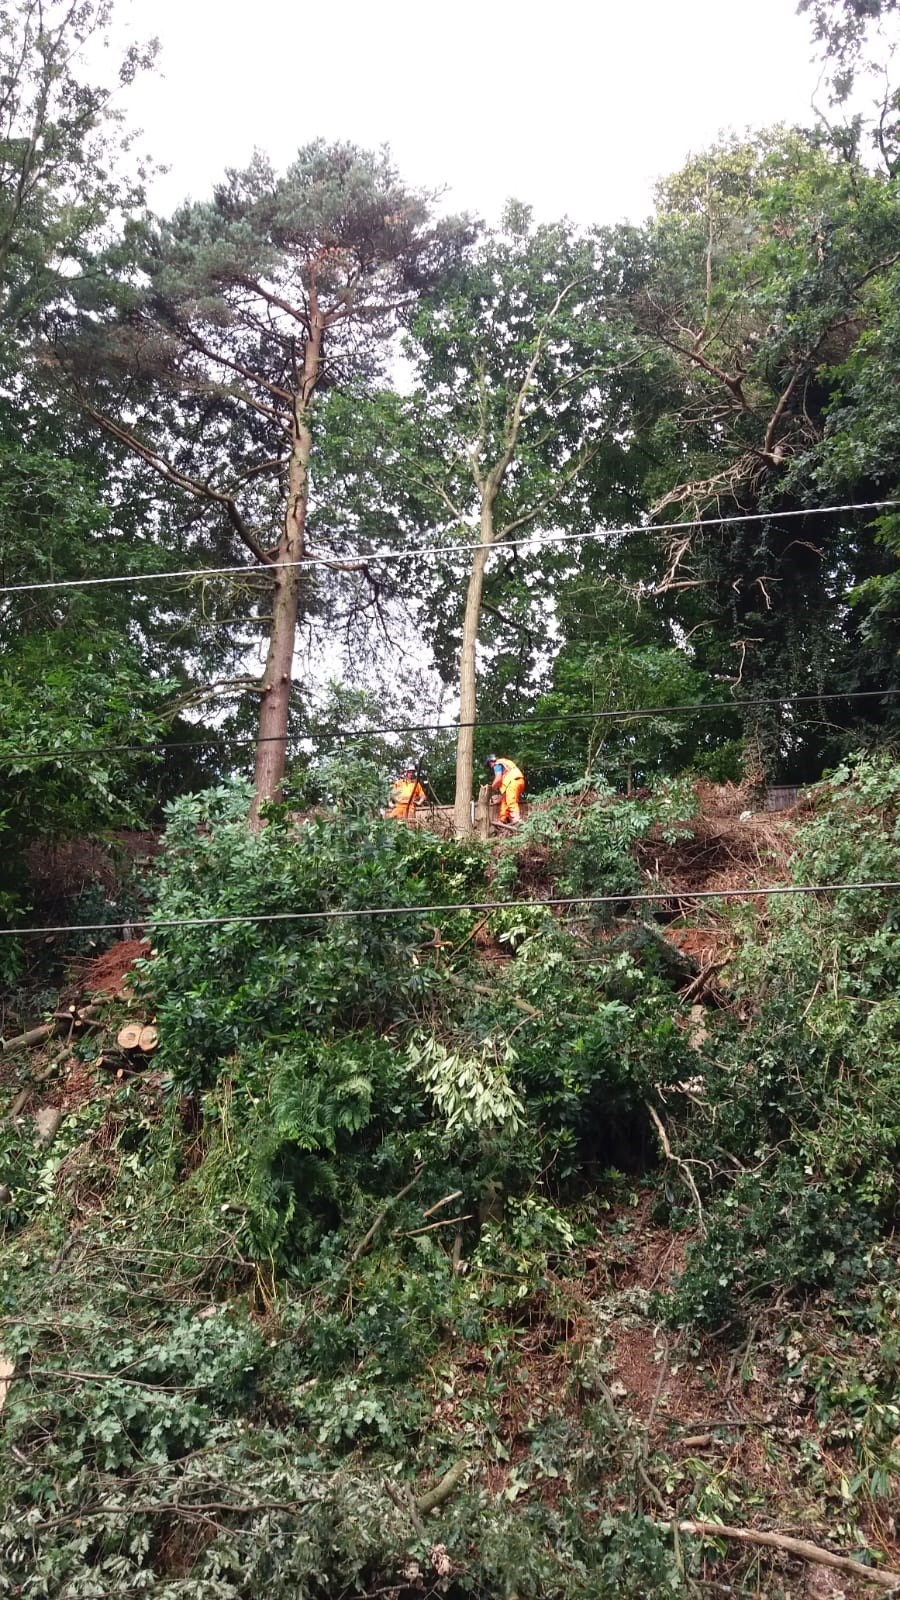 Cross City line south to remain closed while trees and embankment are made safe: Cross City line embankment and trees